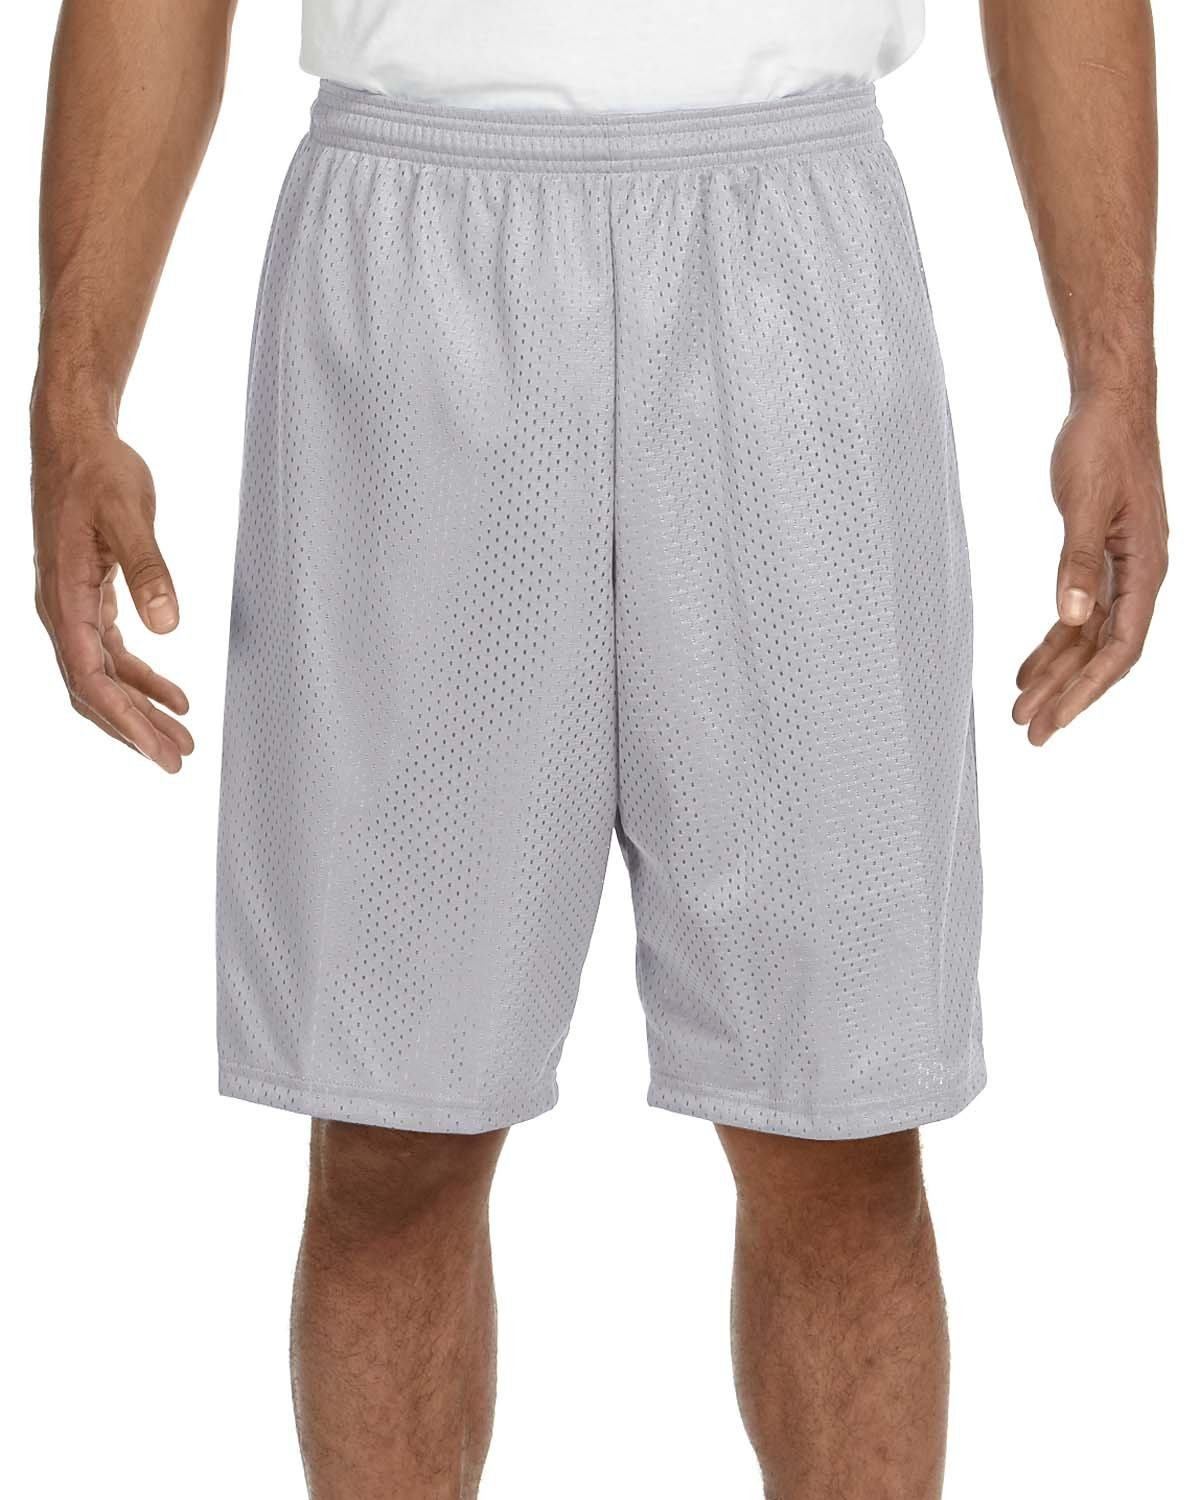 A4 Adult Tricot Mesh Short SILVER